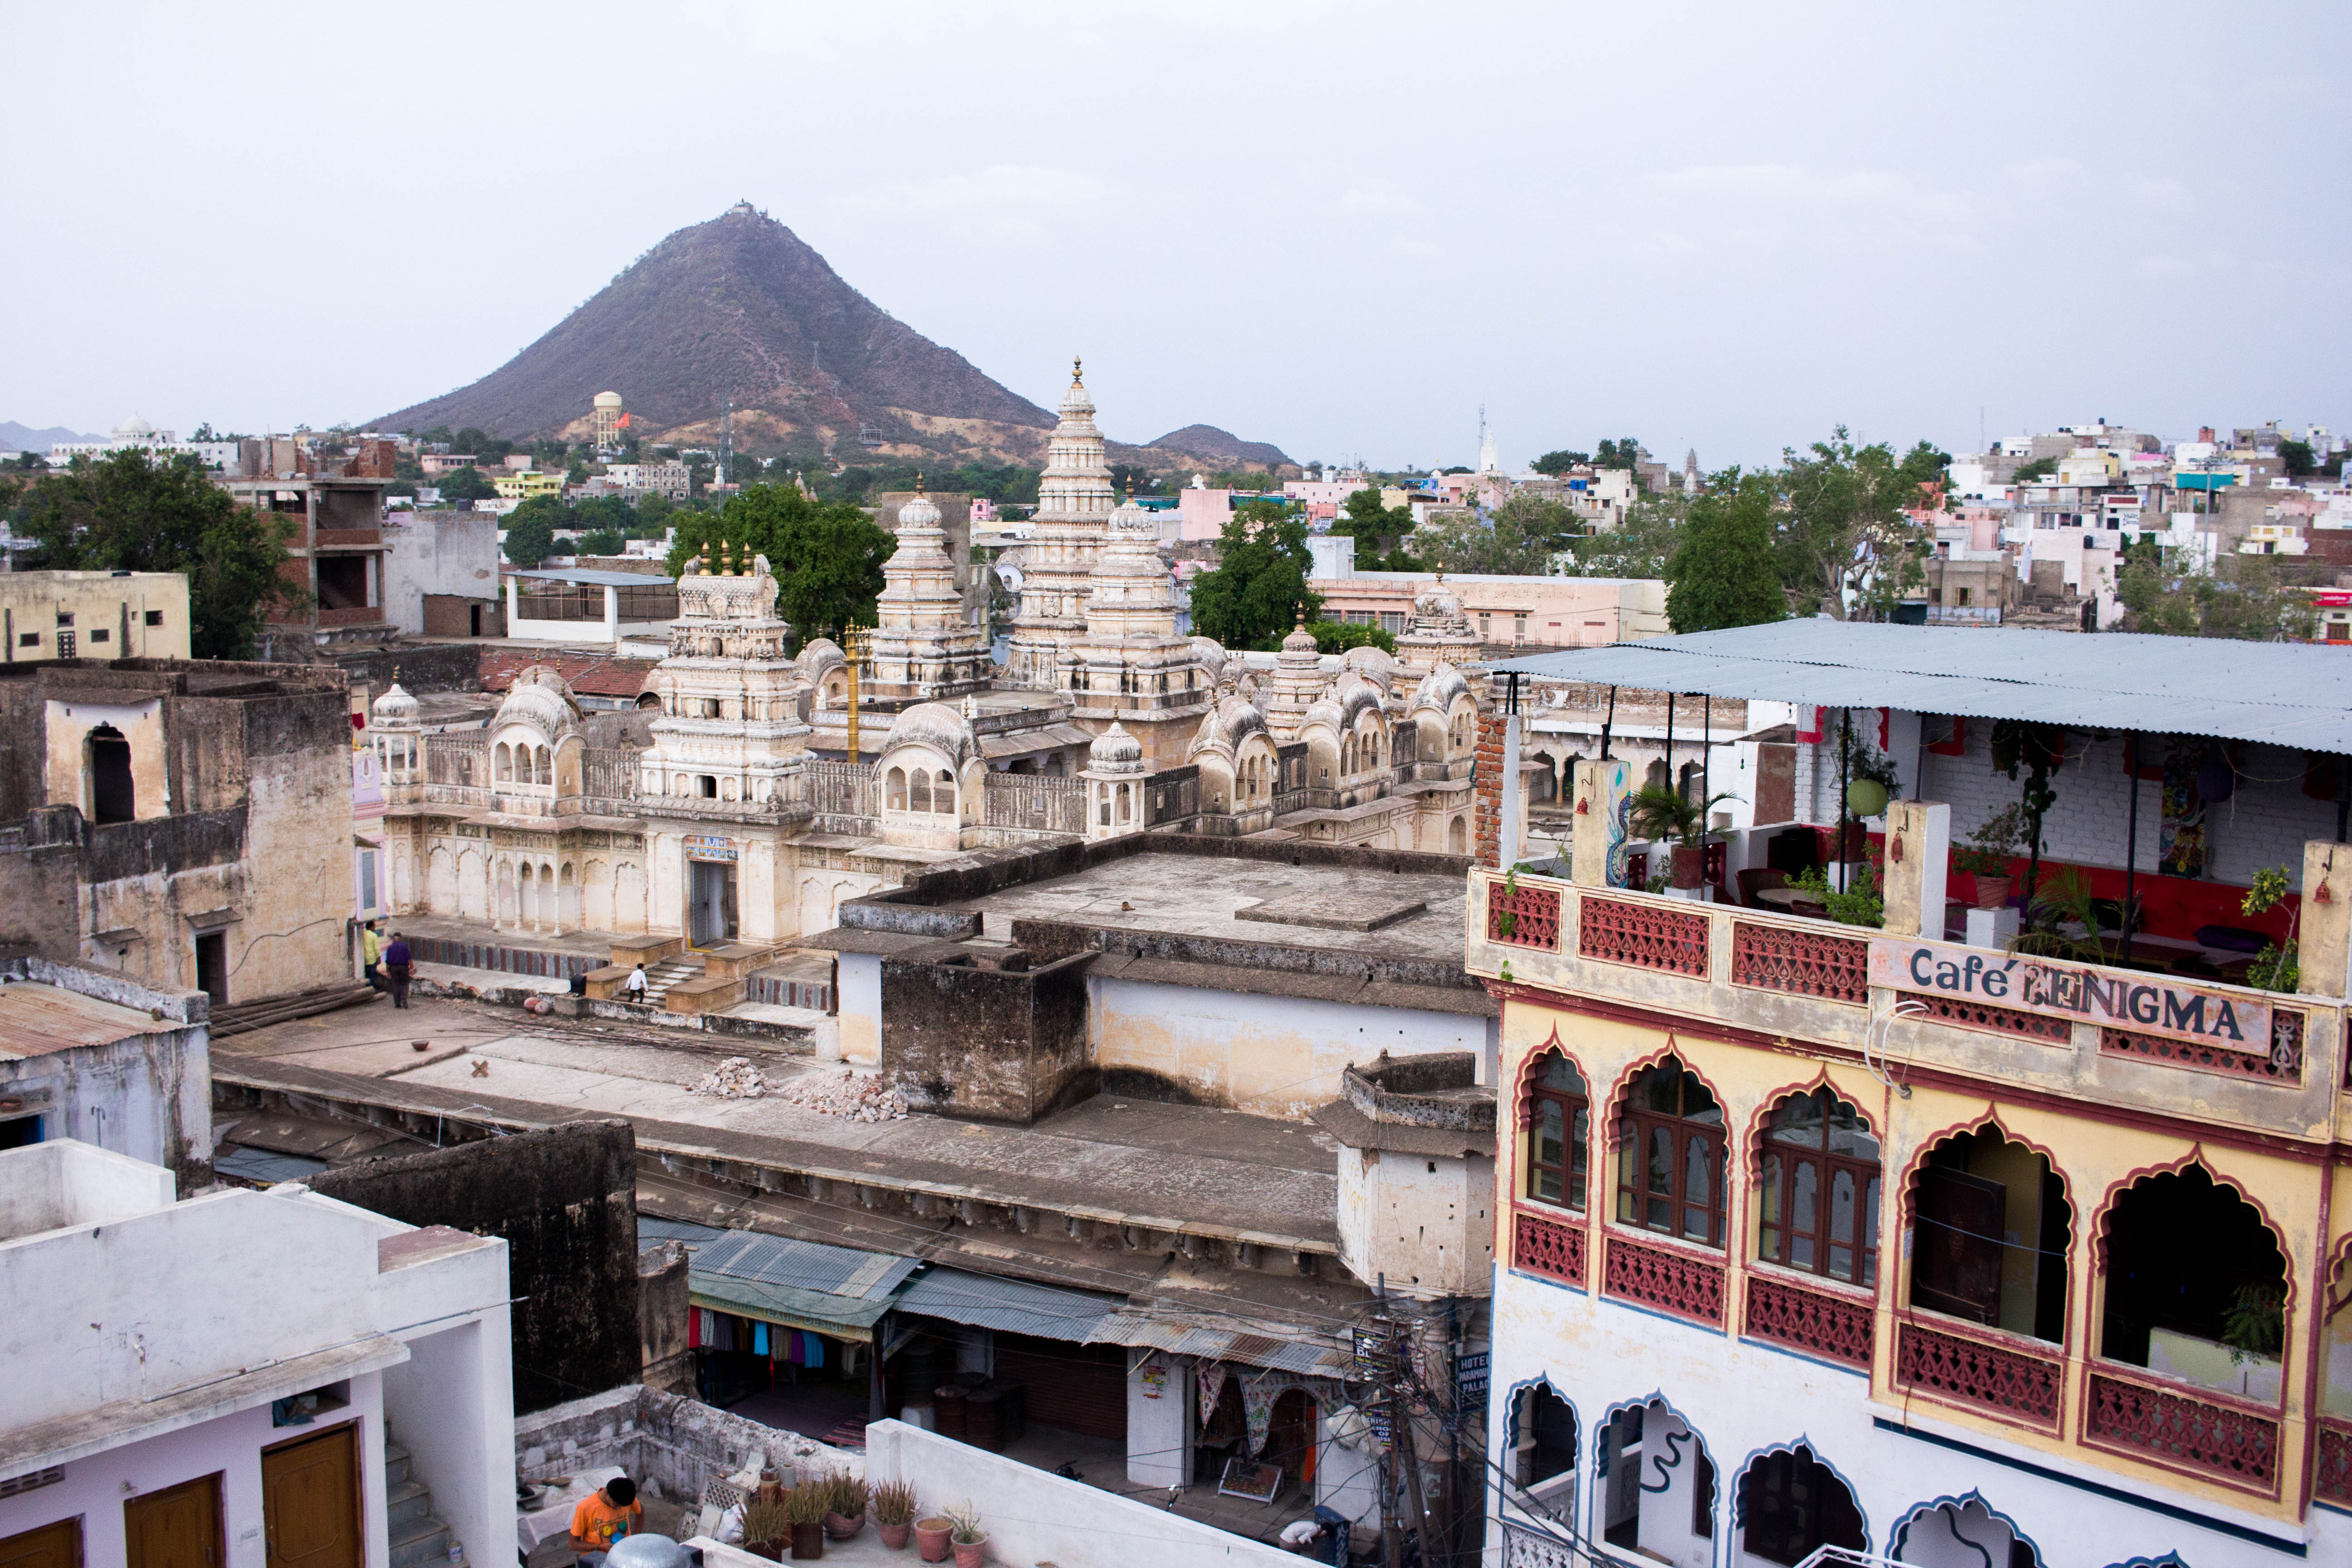 Reasons to put Pushkar on your India bucket list - Kathi Kamleitner - Travelettes (7 of 83)